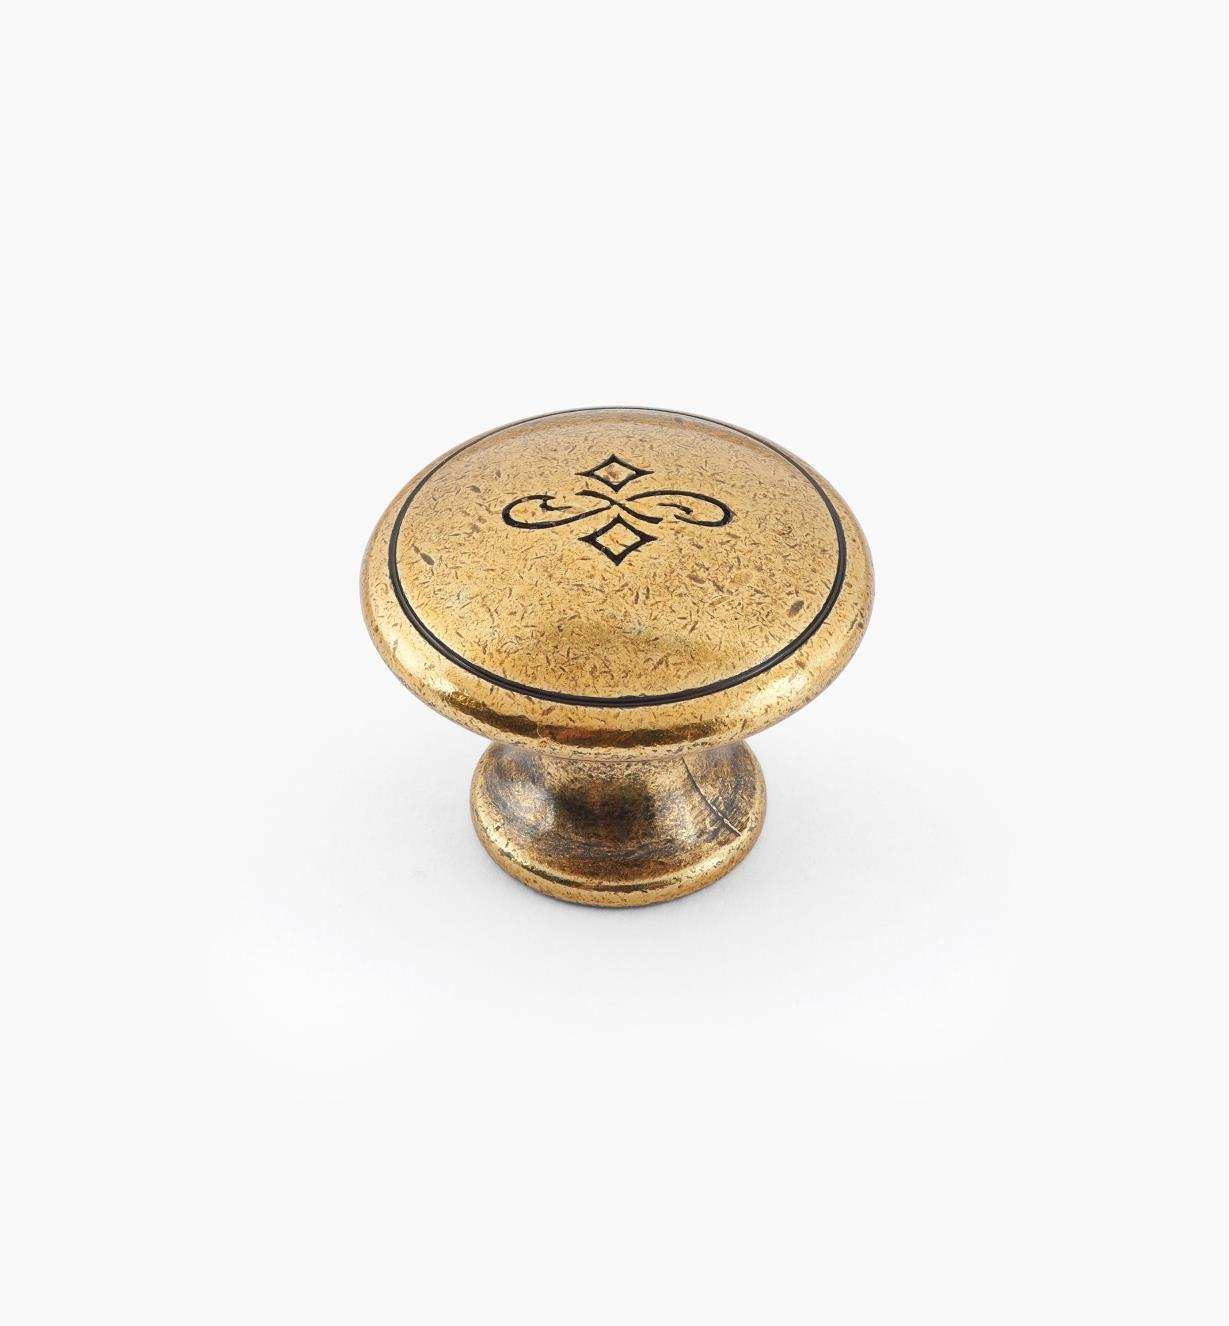 01X4112 - 25mm x 20mm Burnished Bronze Knob